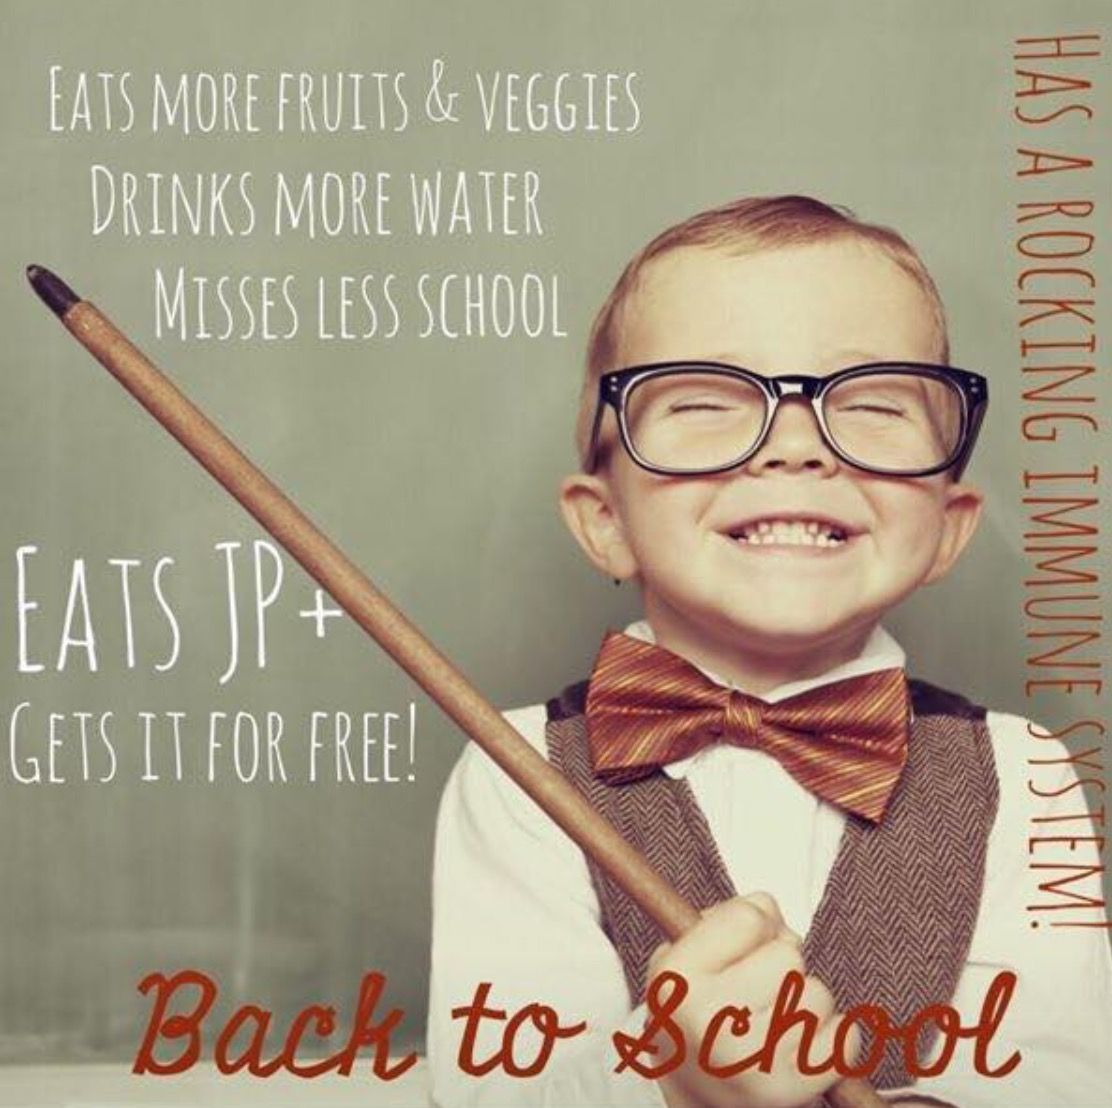 Fuel for School! Give a child in your life the gift of good health this coming school year. Check out the Results Tab under Children's Health Study at Bbinder.juiceplus.com